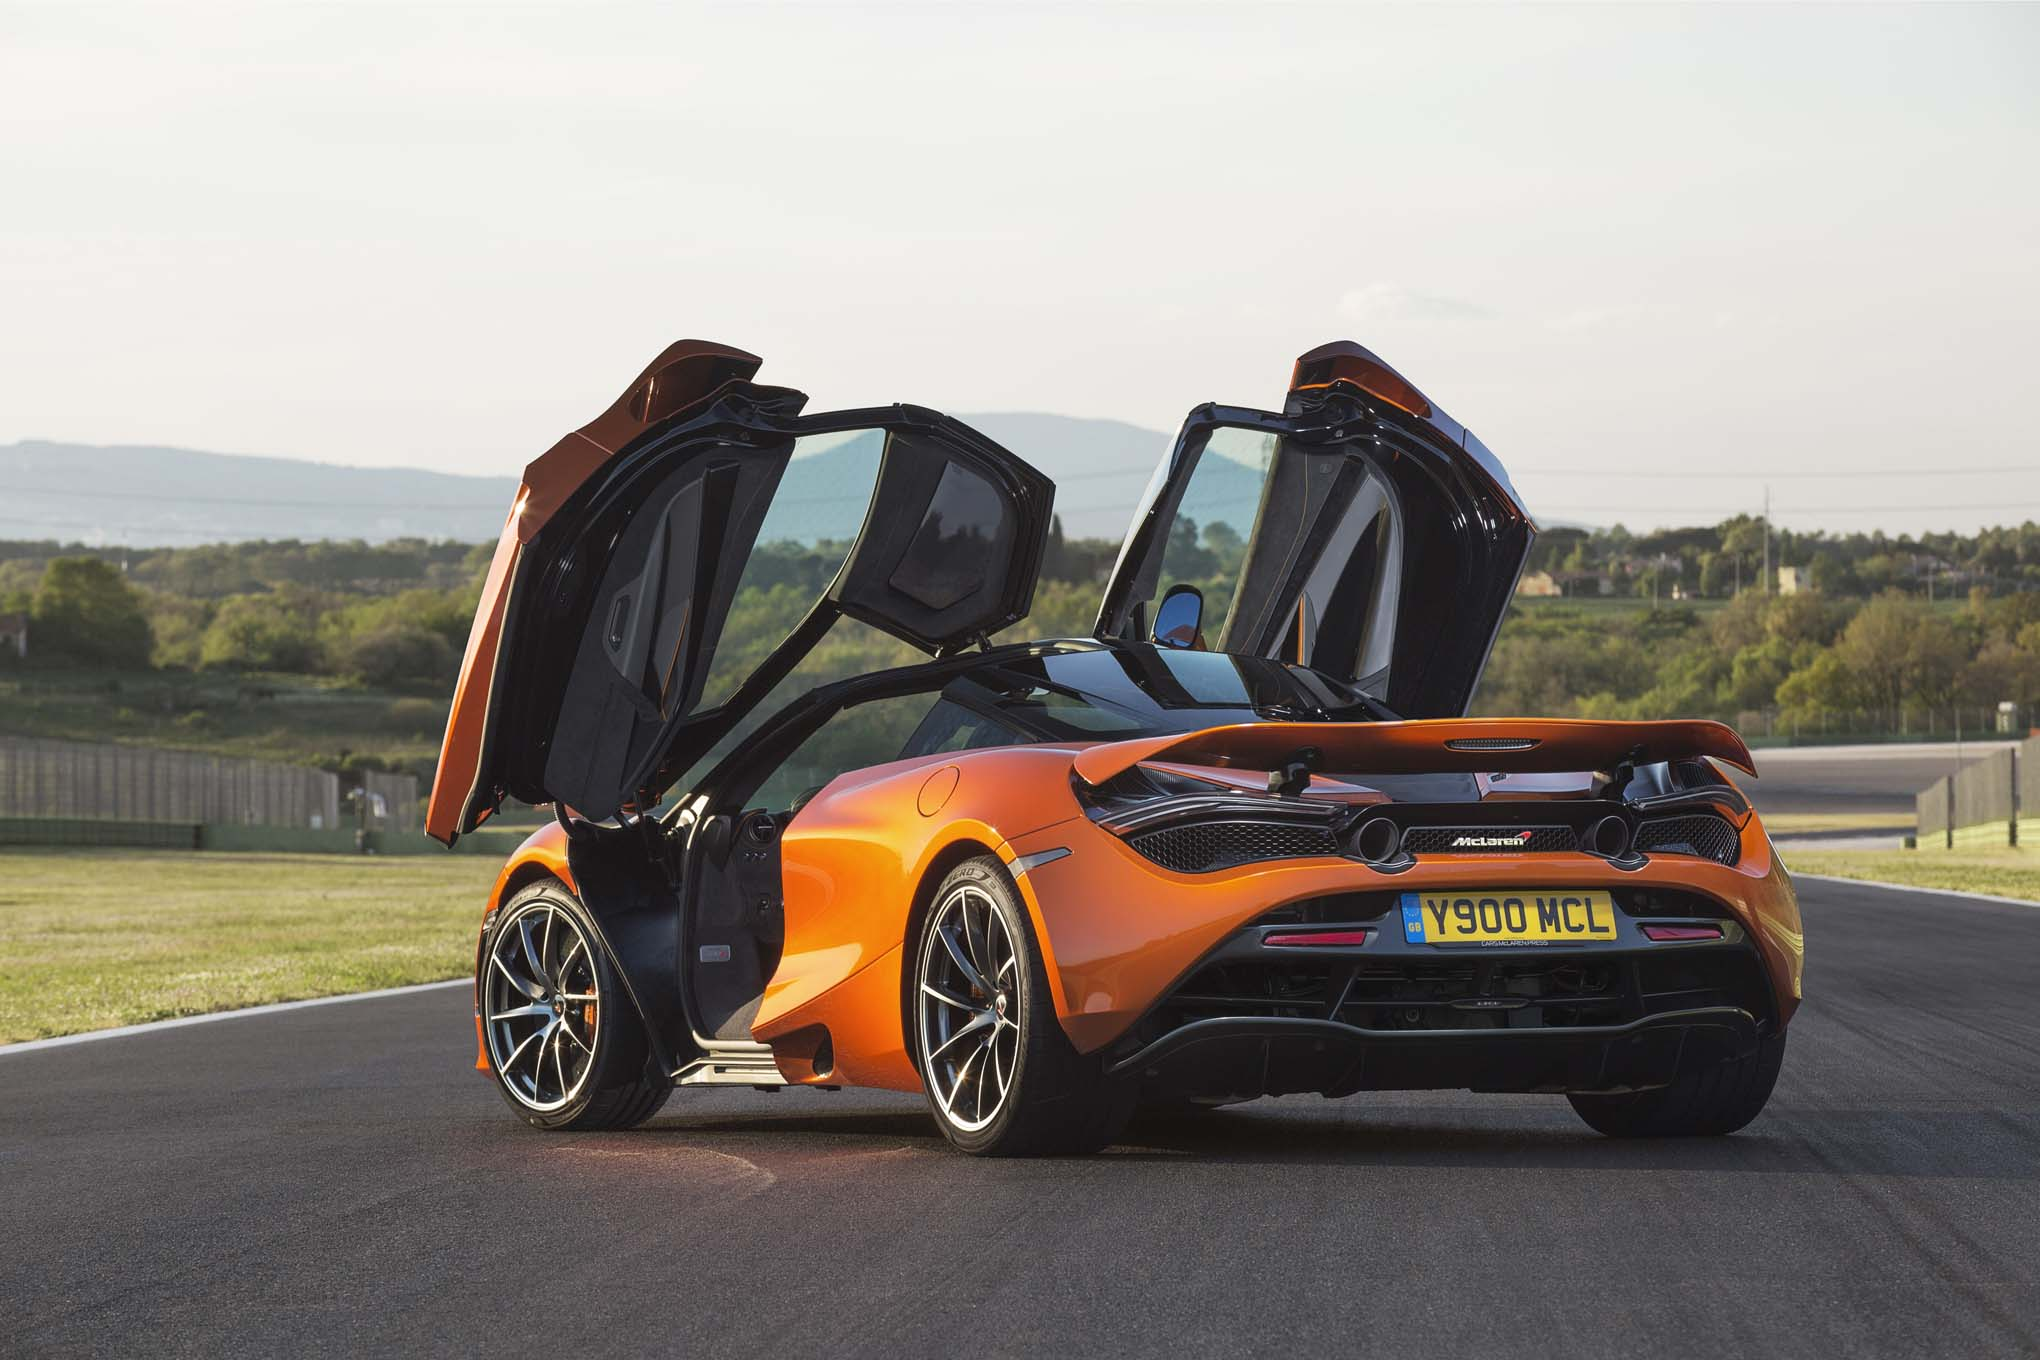 The ... & By Design: 2018 McLaren 720S | Automobile Magazine